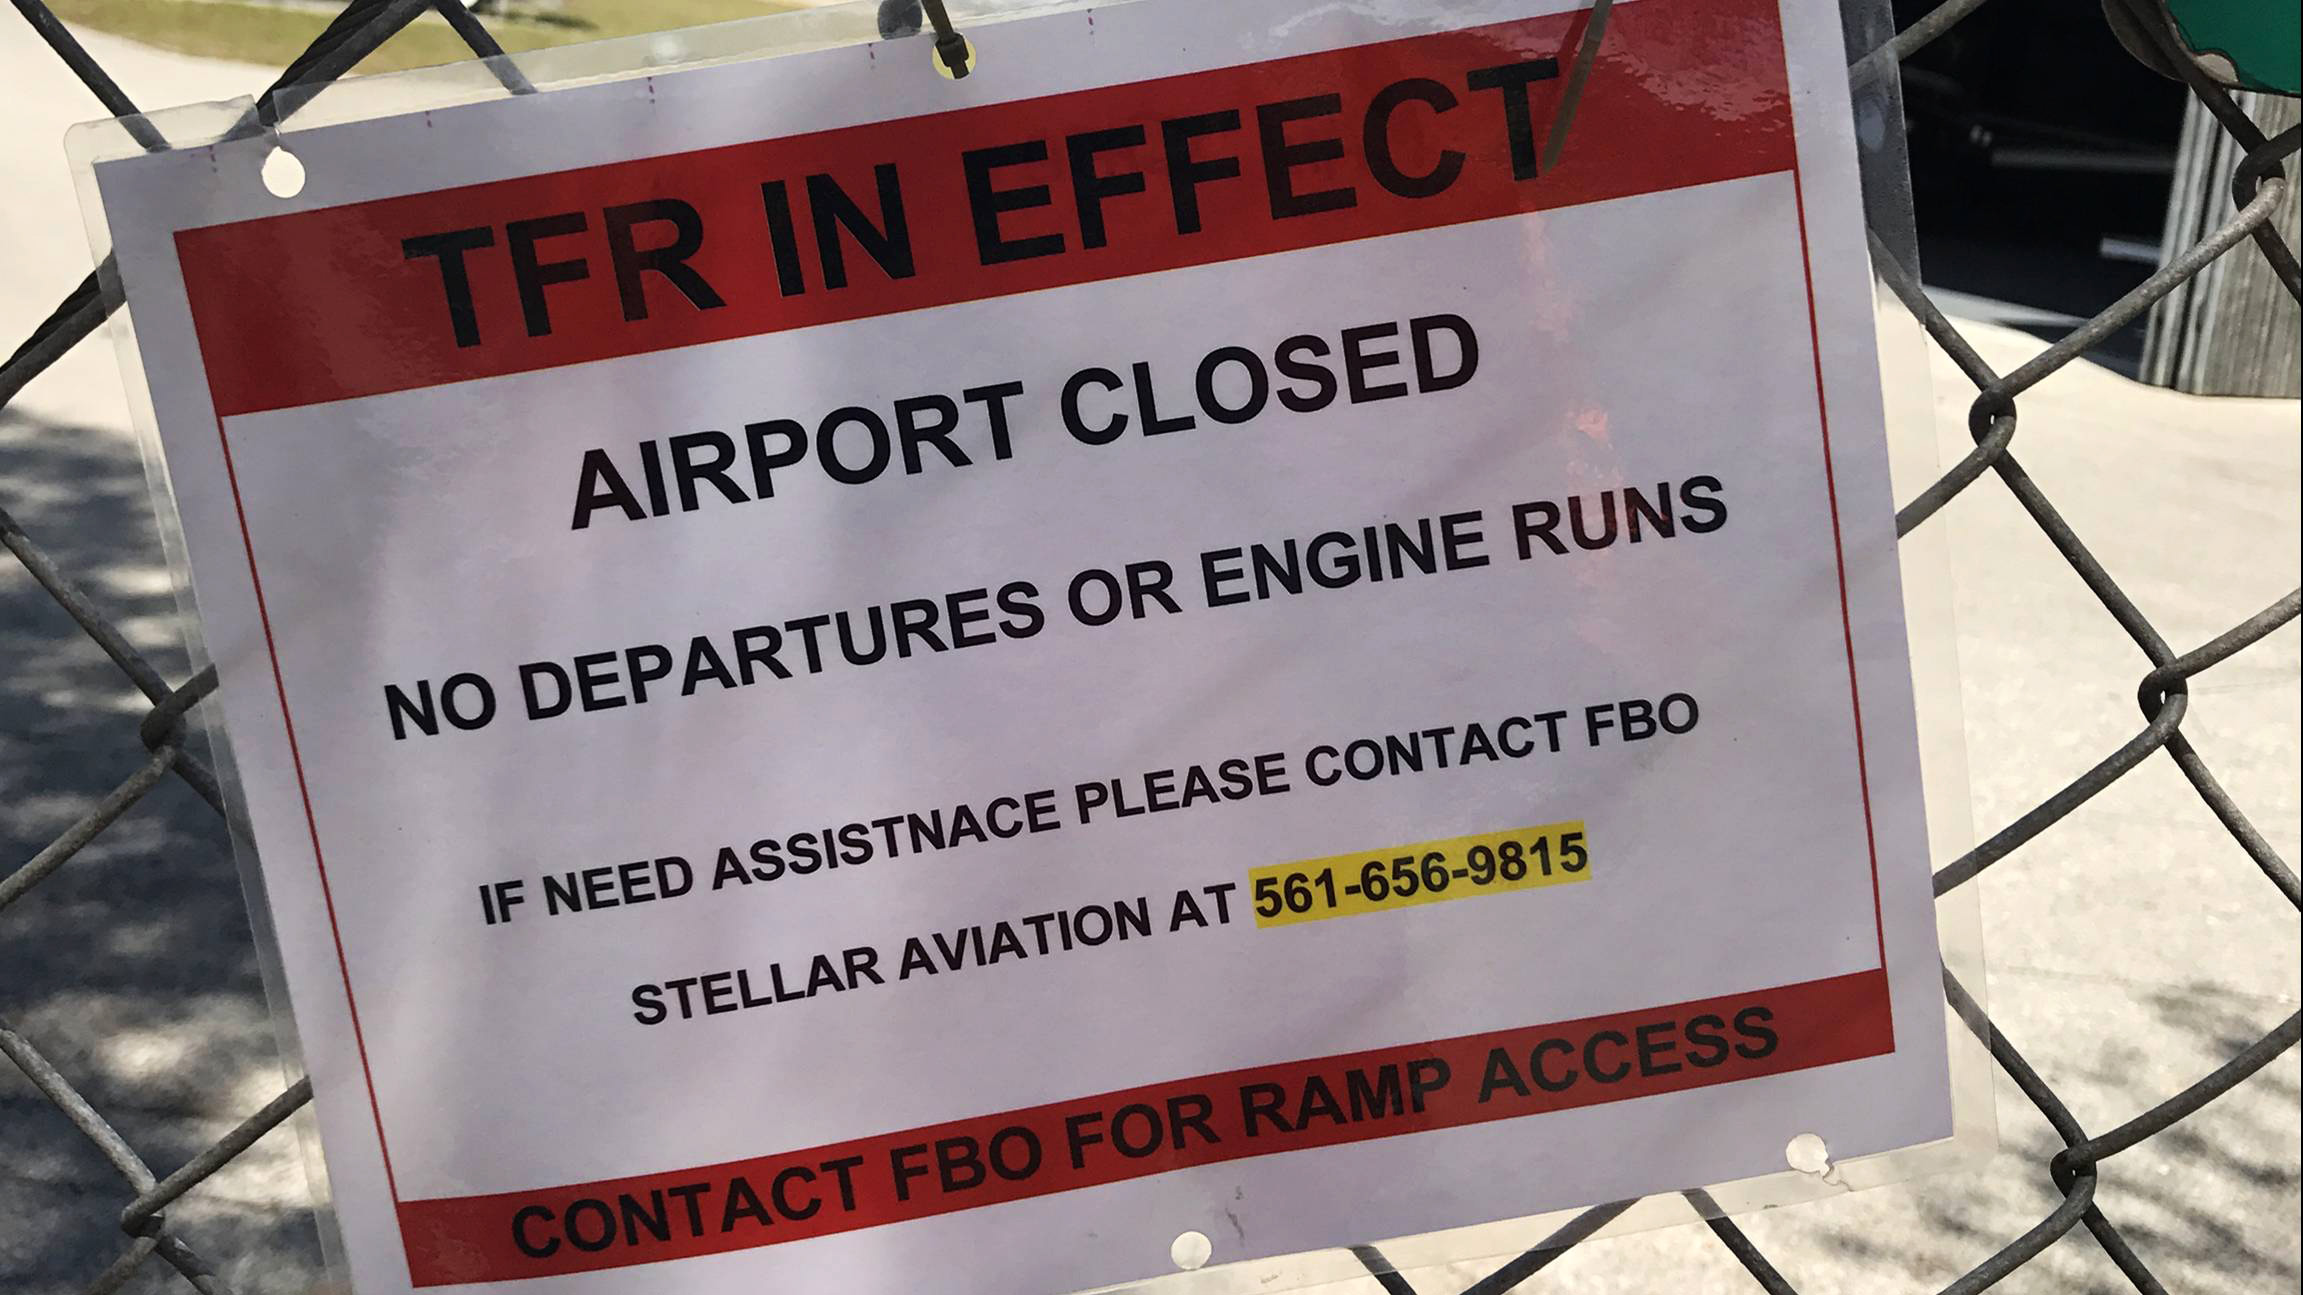 Airport closure sign at Lantana Airport in West Palm Beach, Florida. Photo courtesy of Justin Rooks.